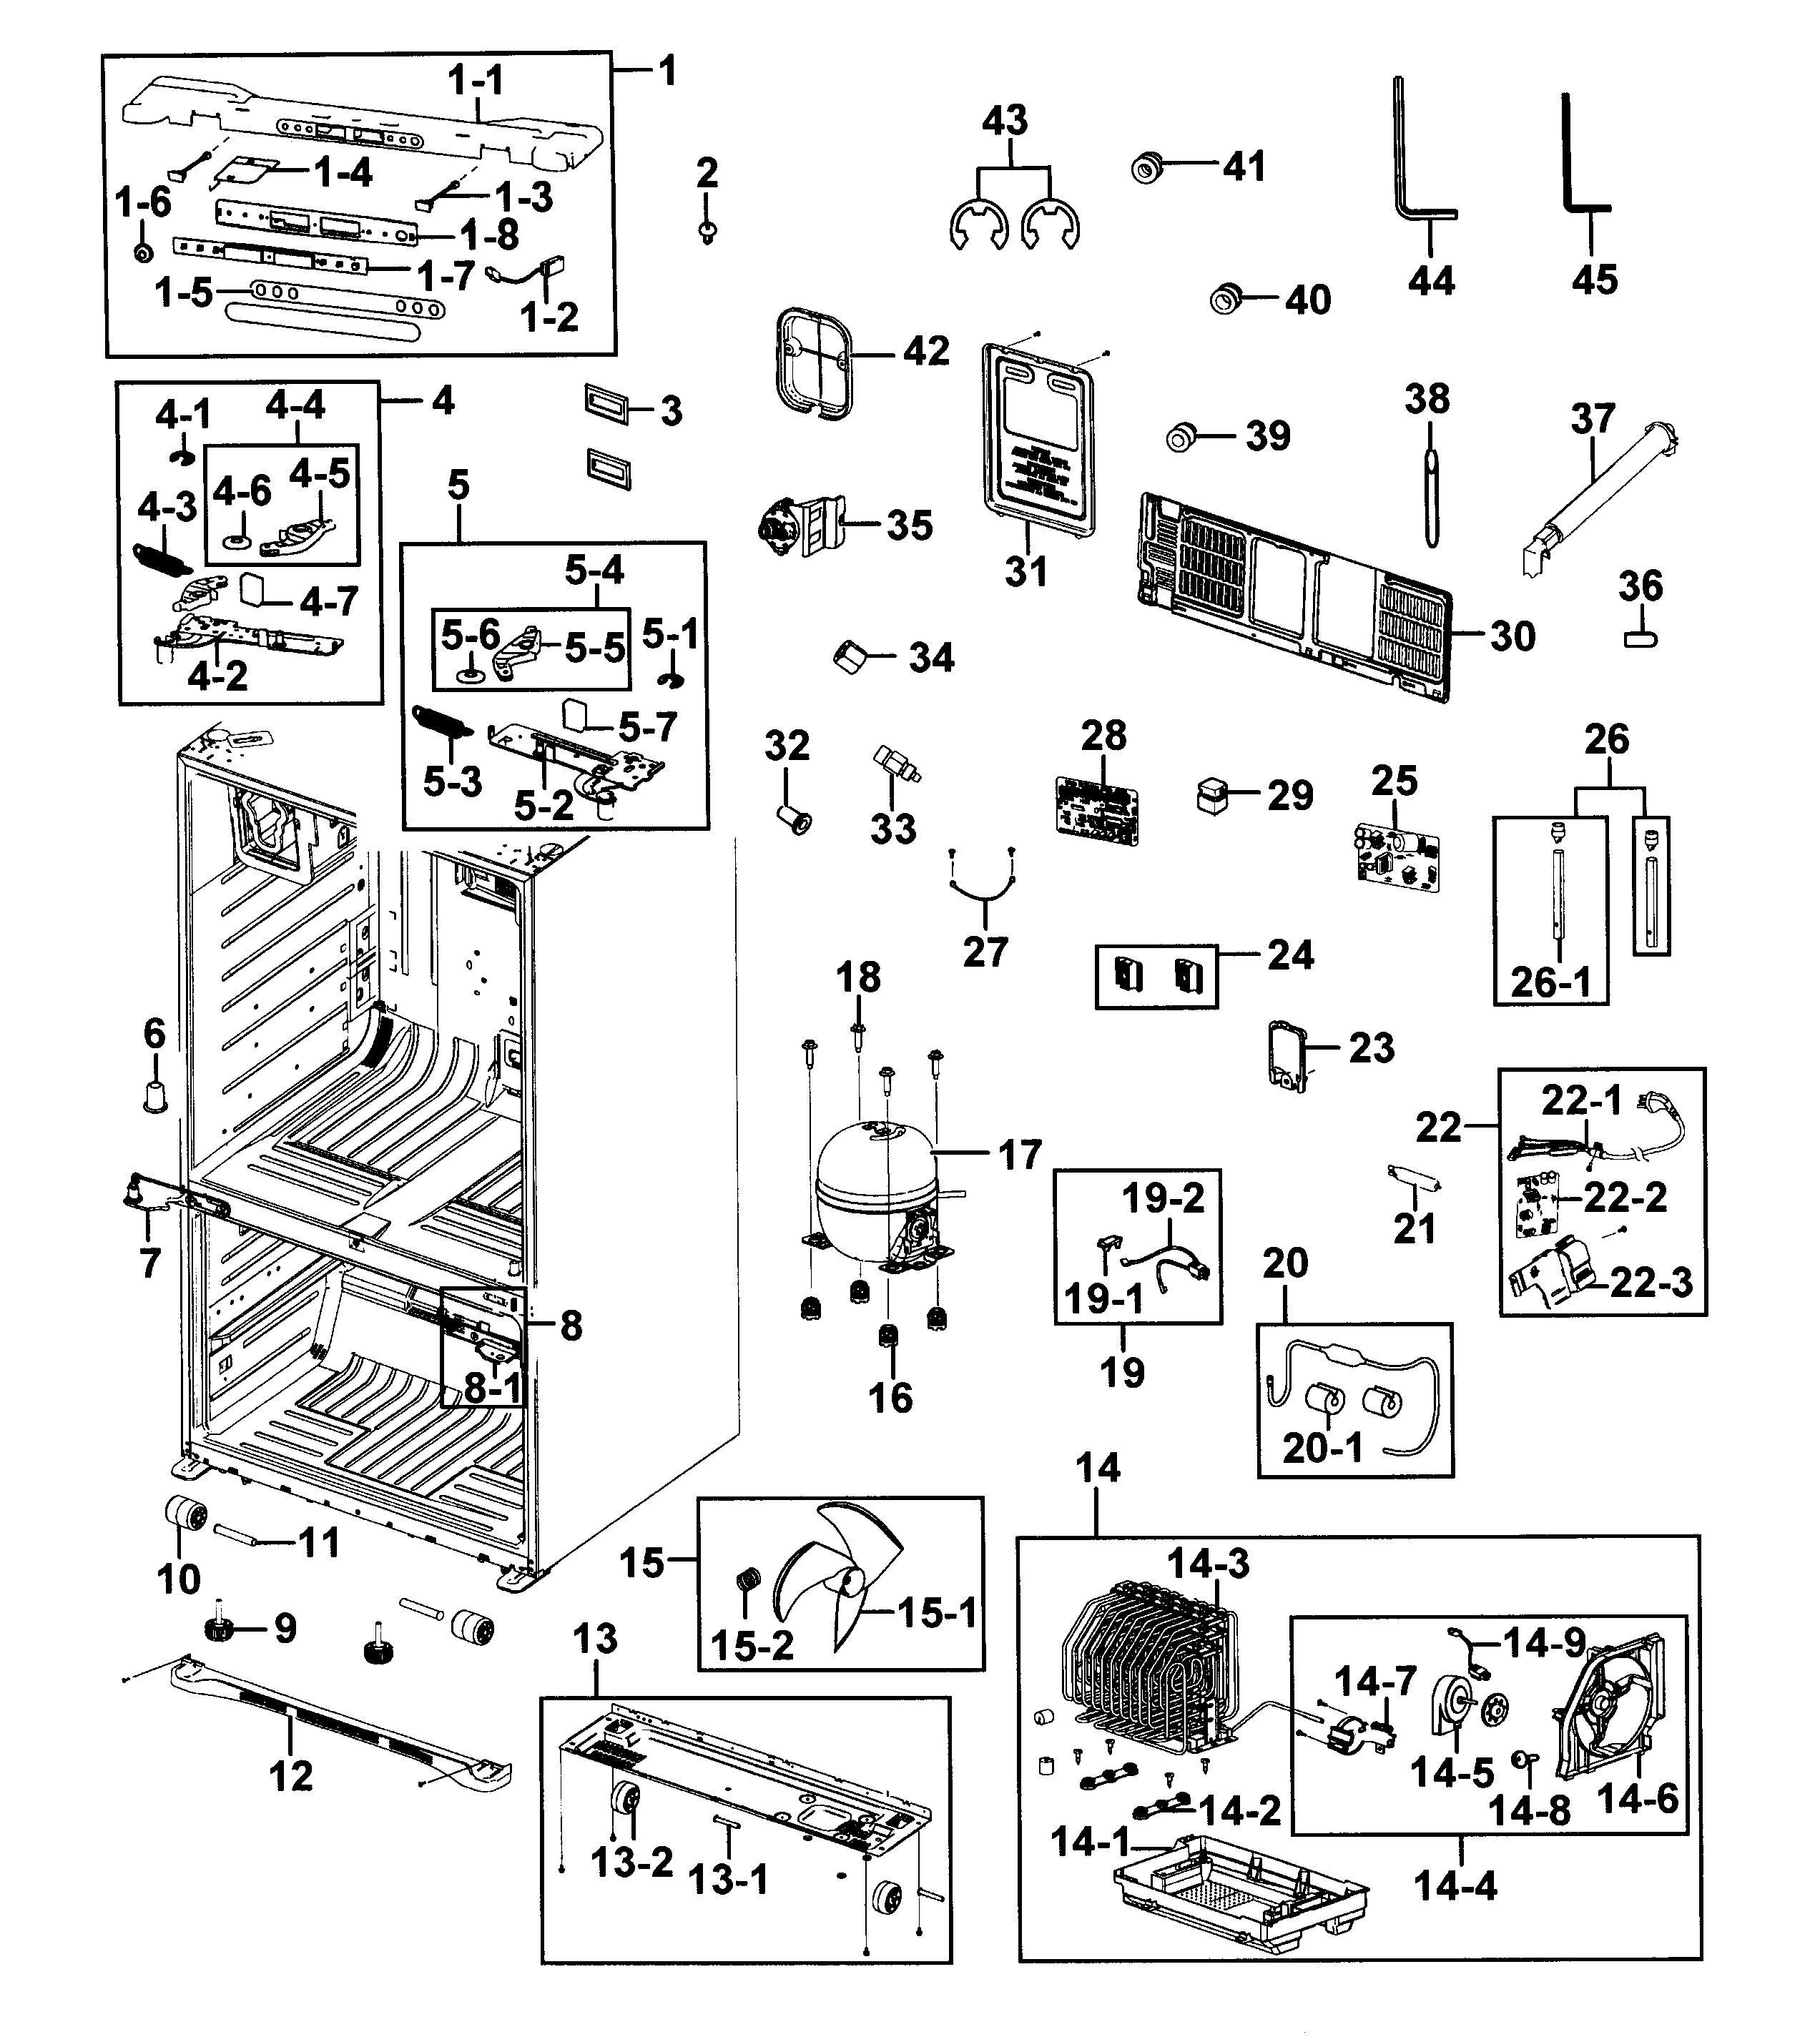 Samsung Ice Maker Wiring Diagram Get Free Image About